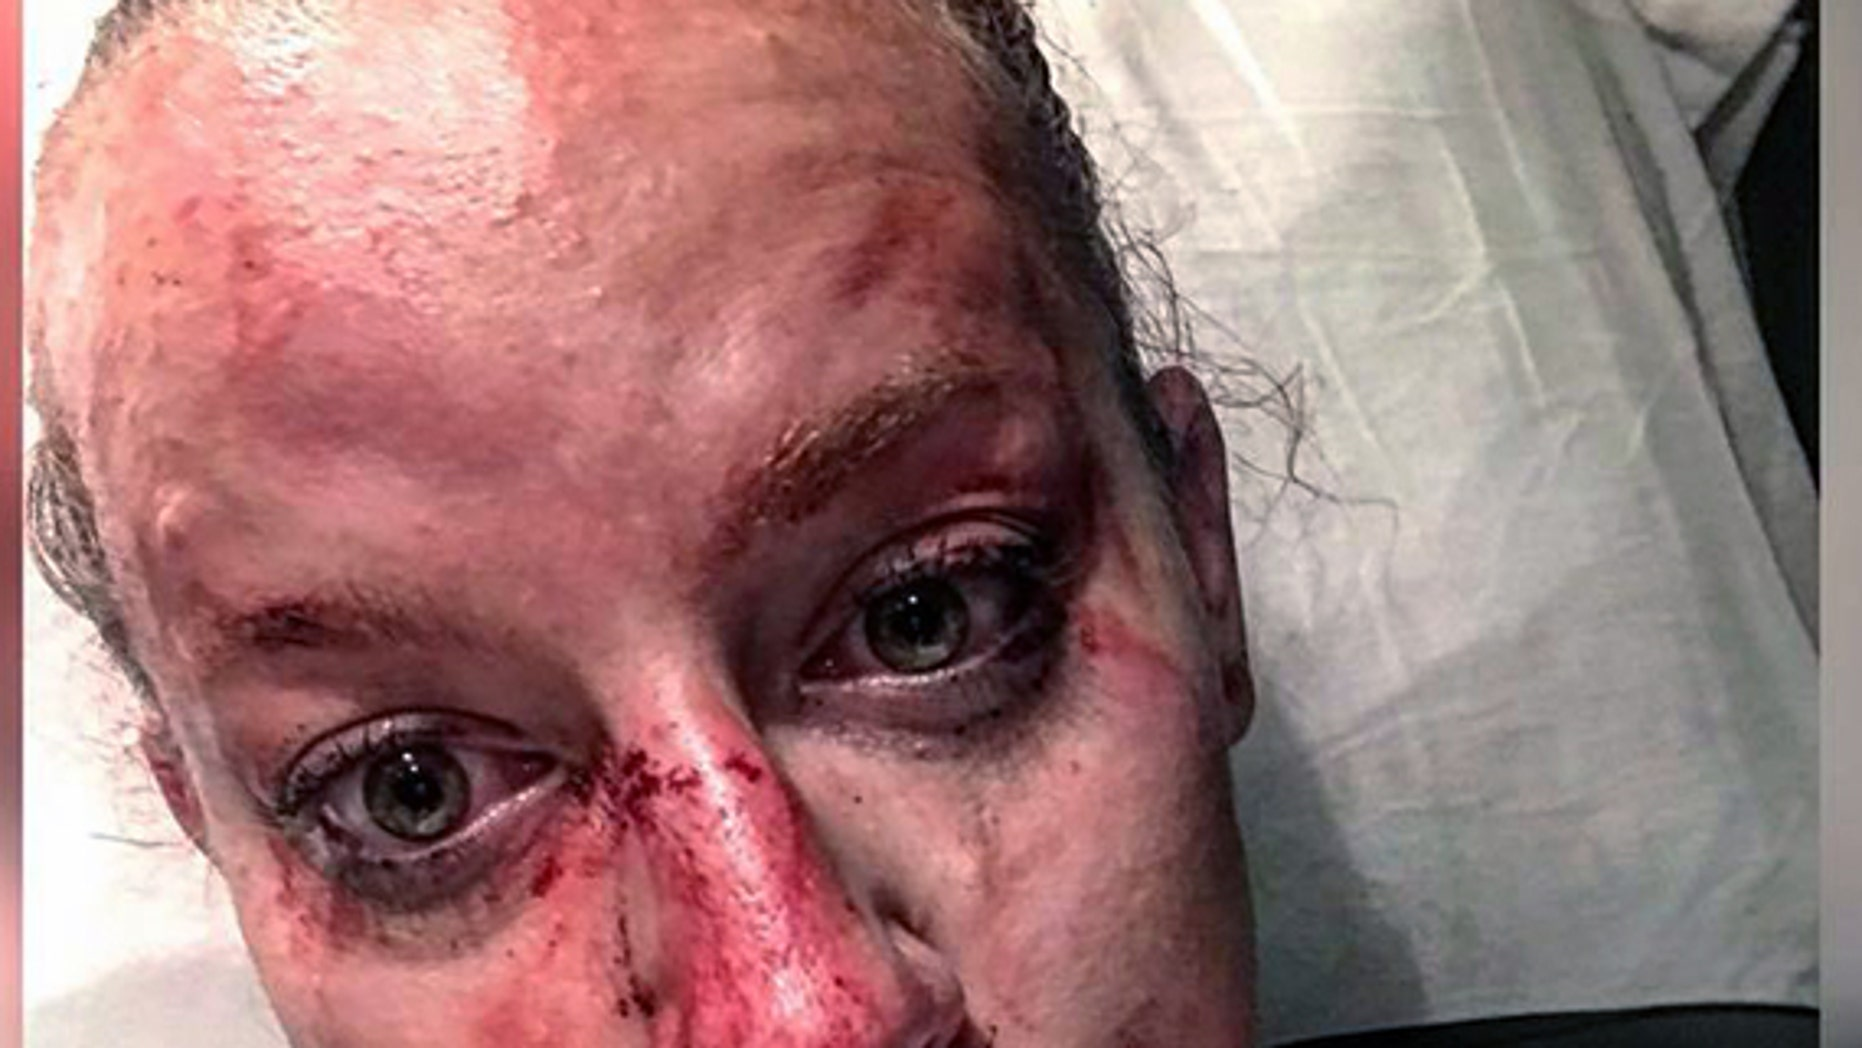 Brooke County (W.Va.) Sheriff's Deputy Kristen Richmond posted this photo of her injuries after a fight with a suspect early Friday.